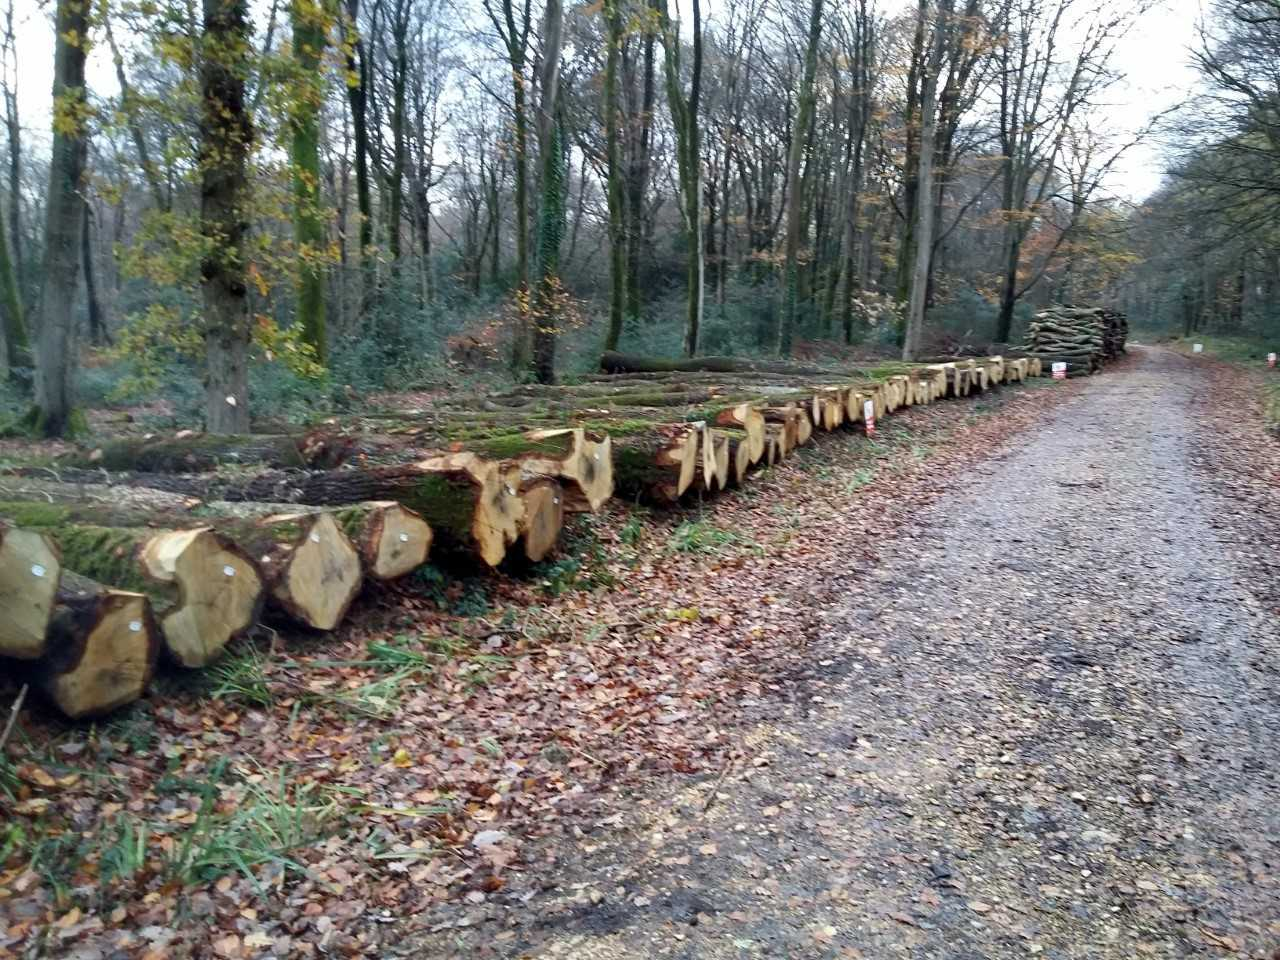 The felled trees stacked at Parkhurst Forest. Picture by George Chastney.